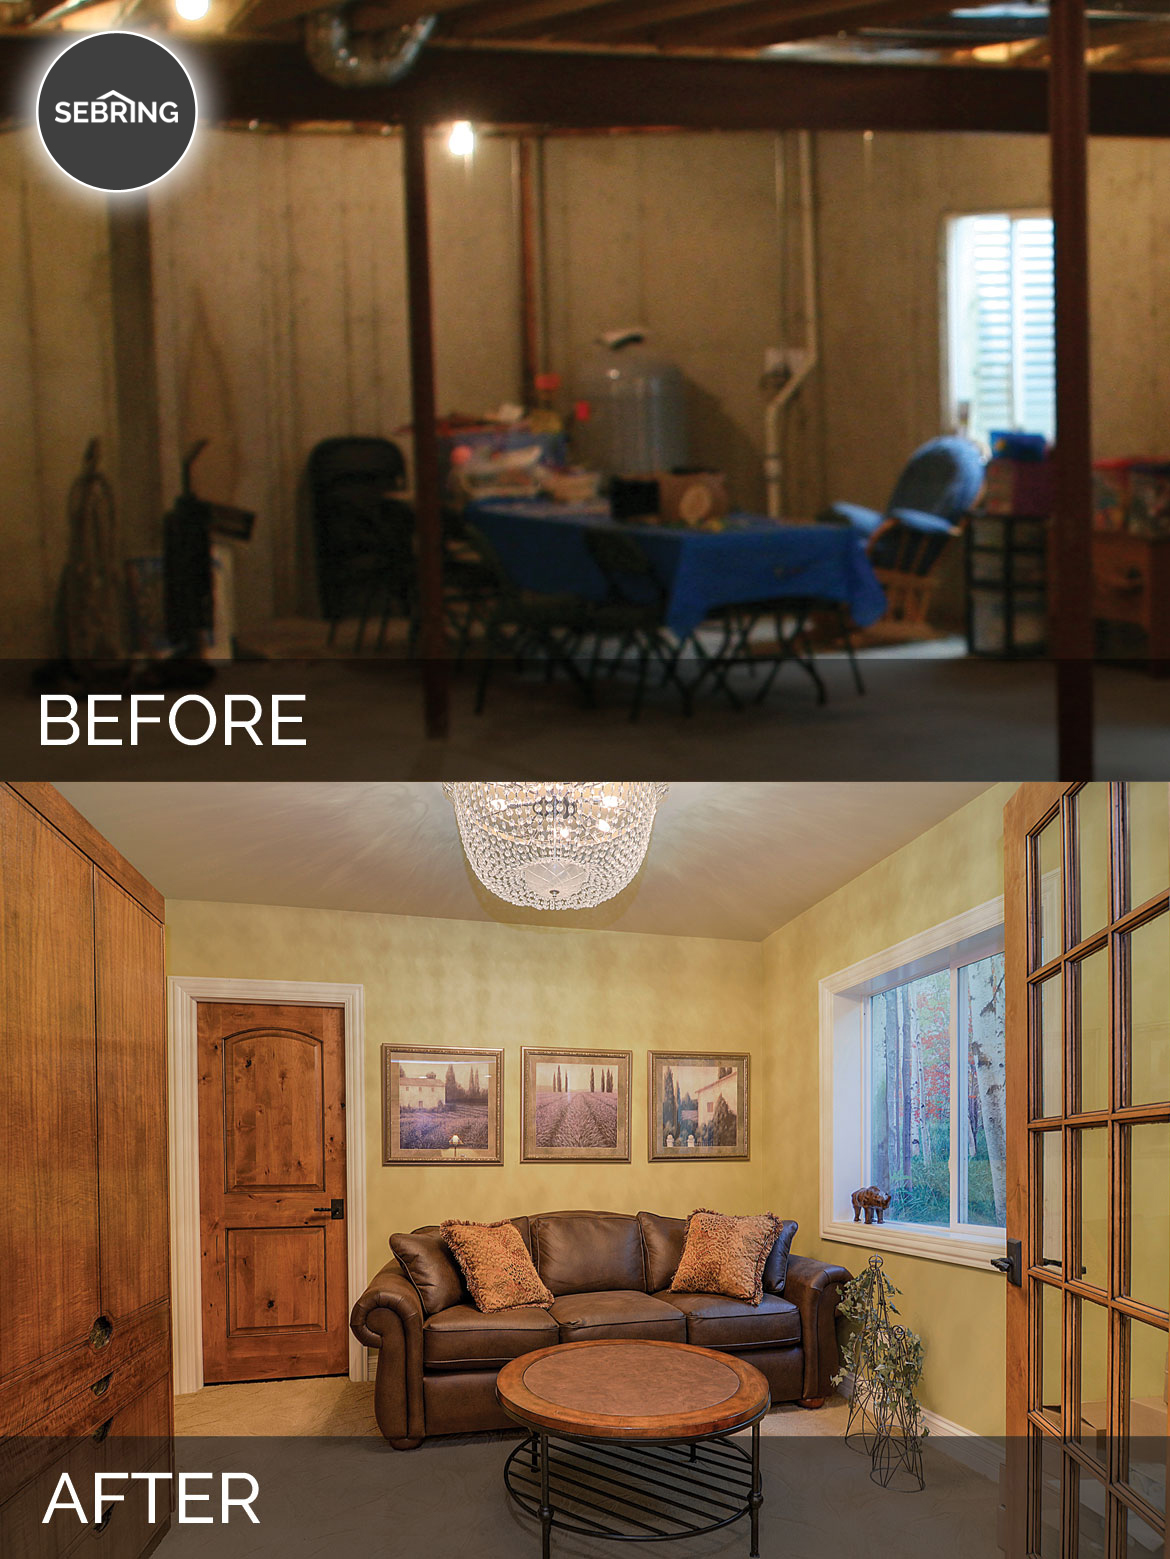 Brian Amp Danica S Basement Before Amp After Pictures Home